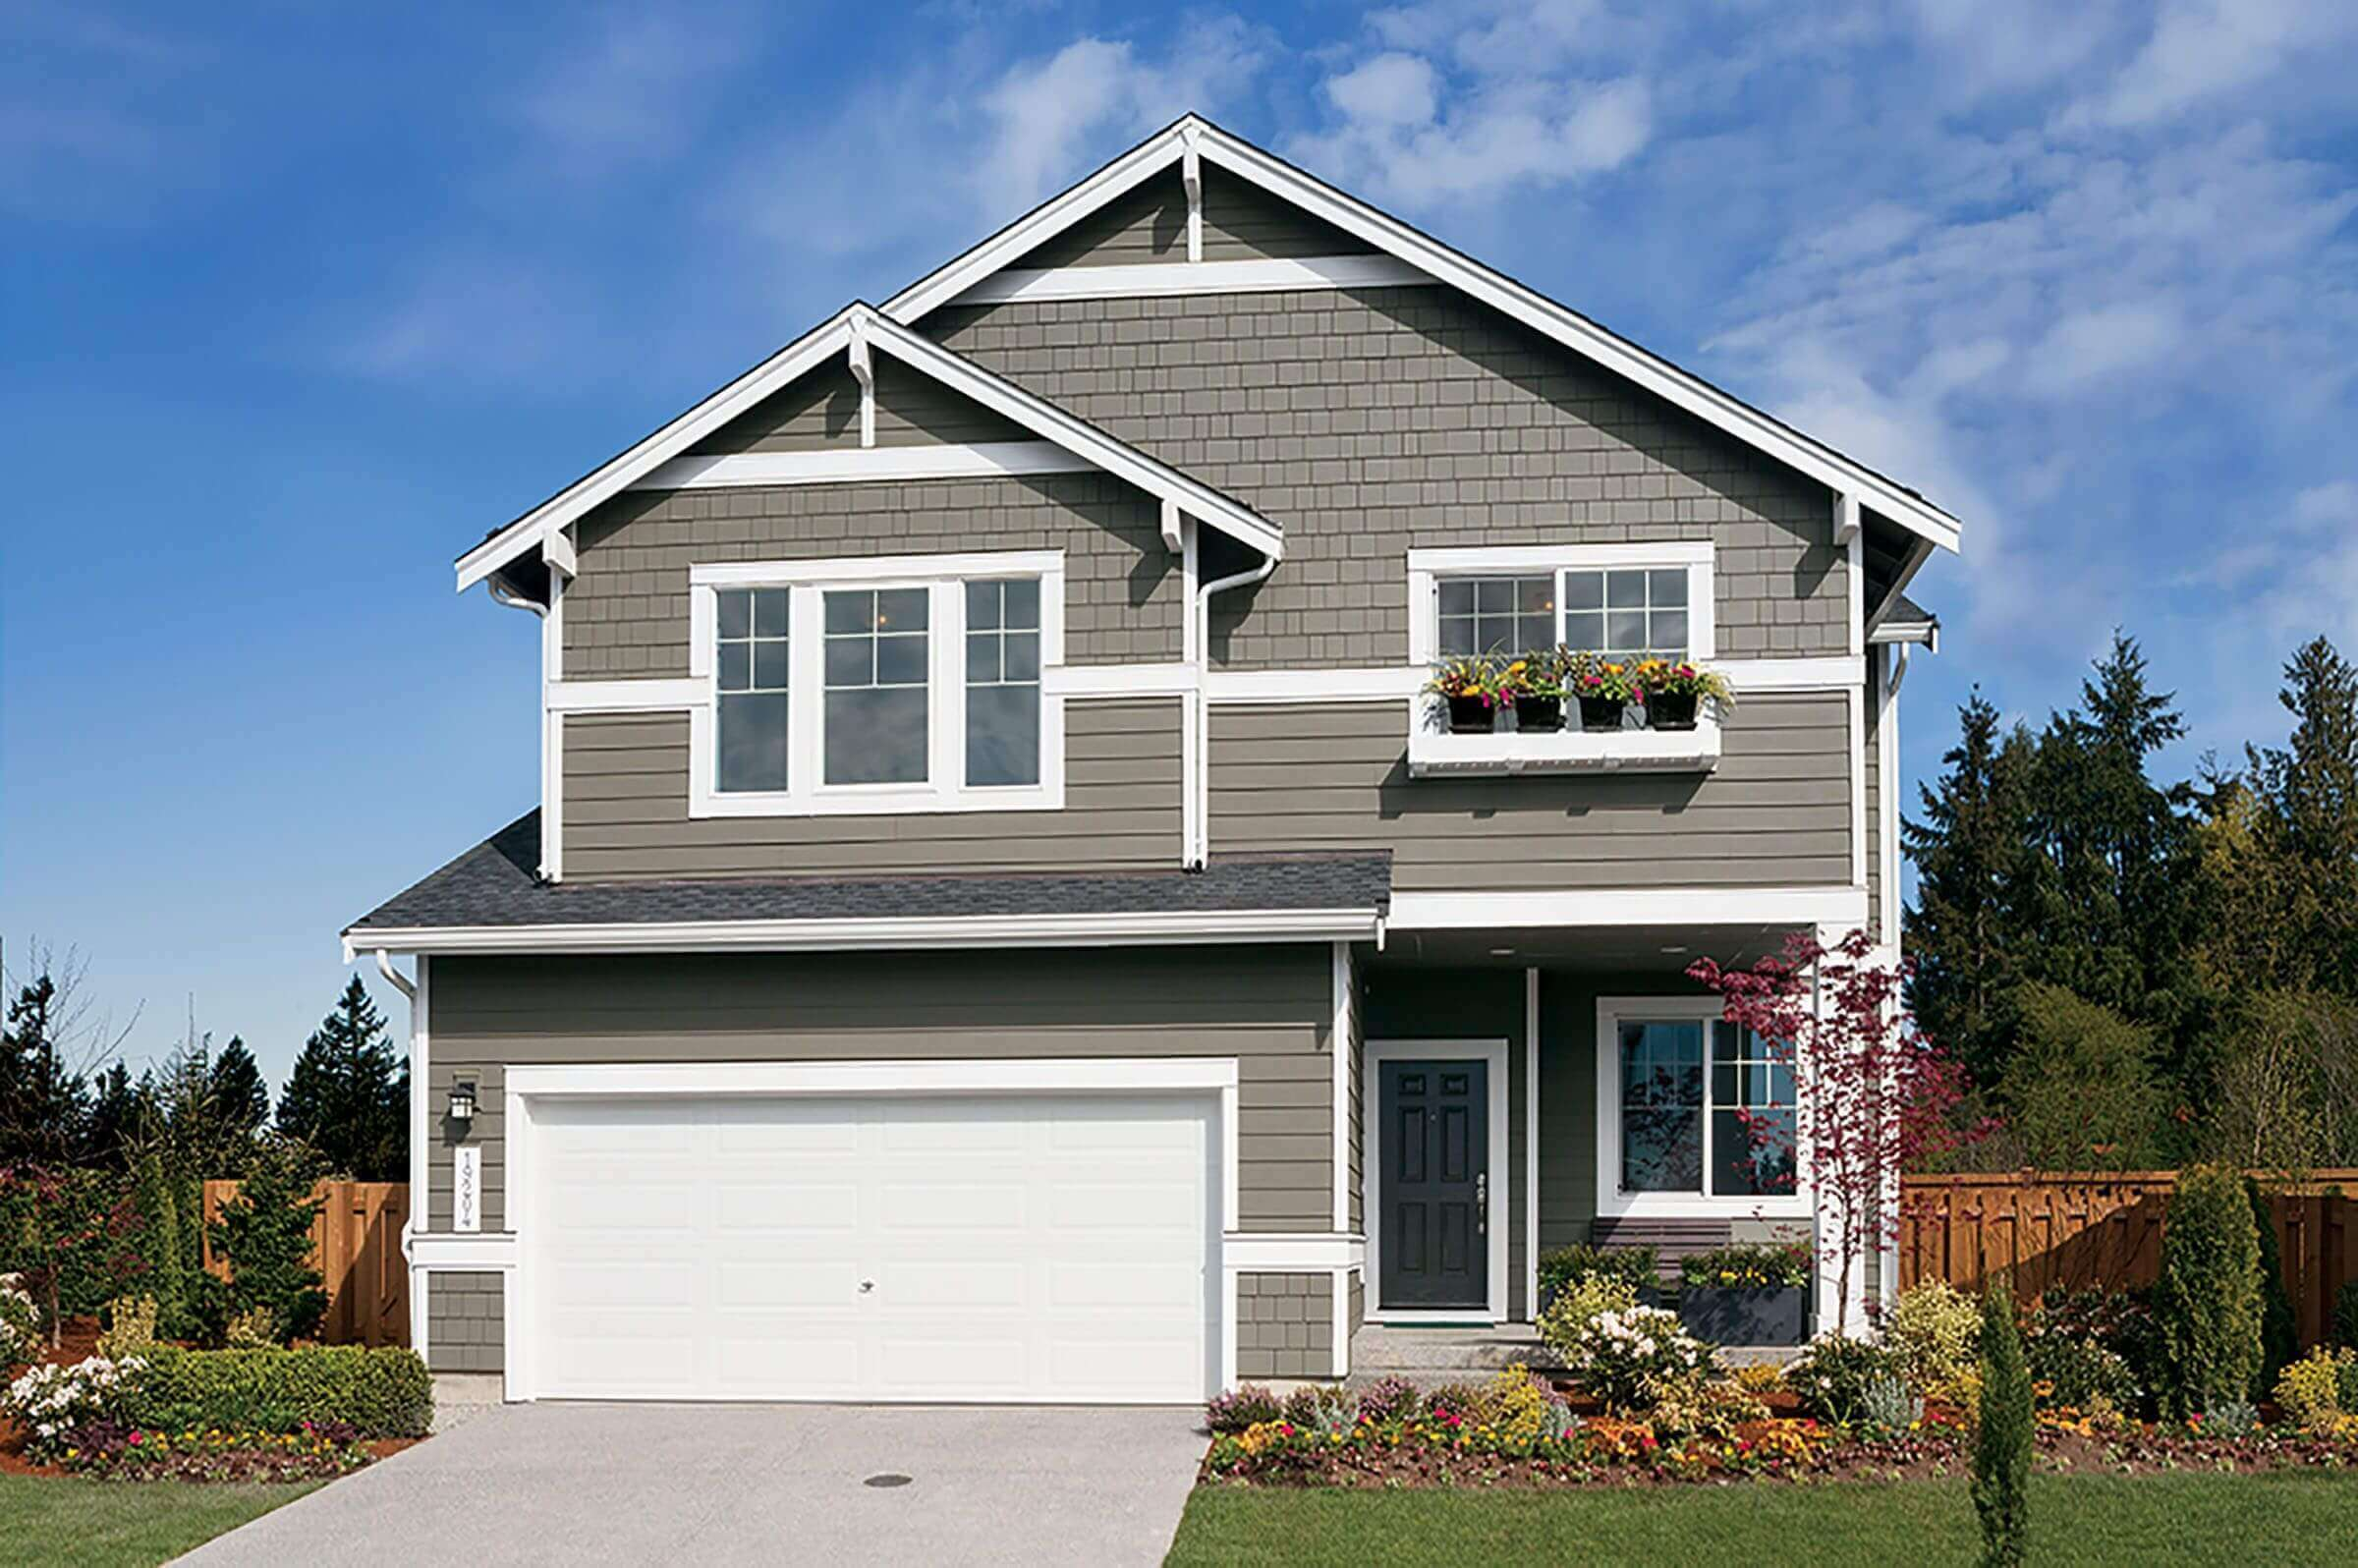 Single Family for Sale at Overlook At Riverfront - The Skagit 4510 Riverfront Blvd. Everett, Washington 98203 United States